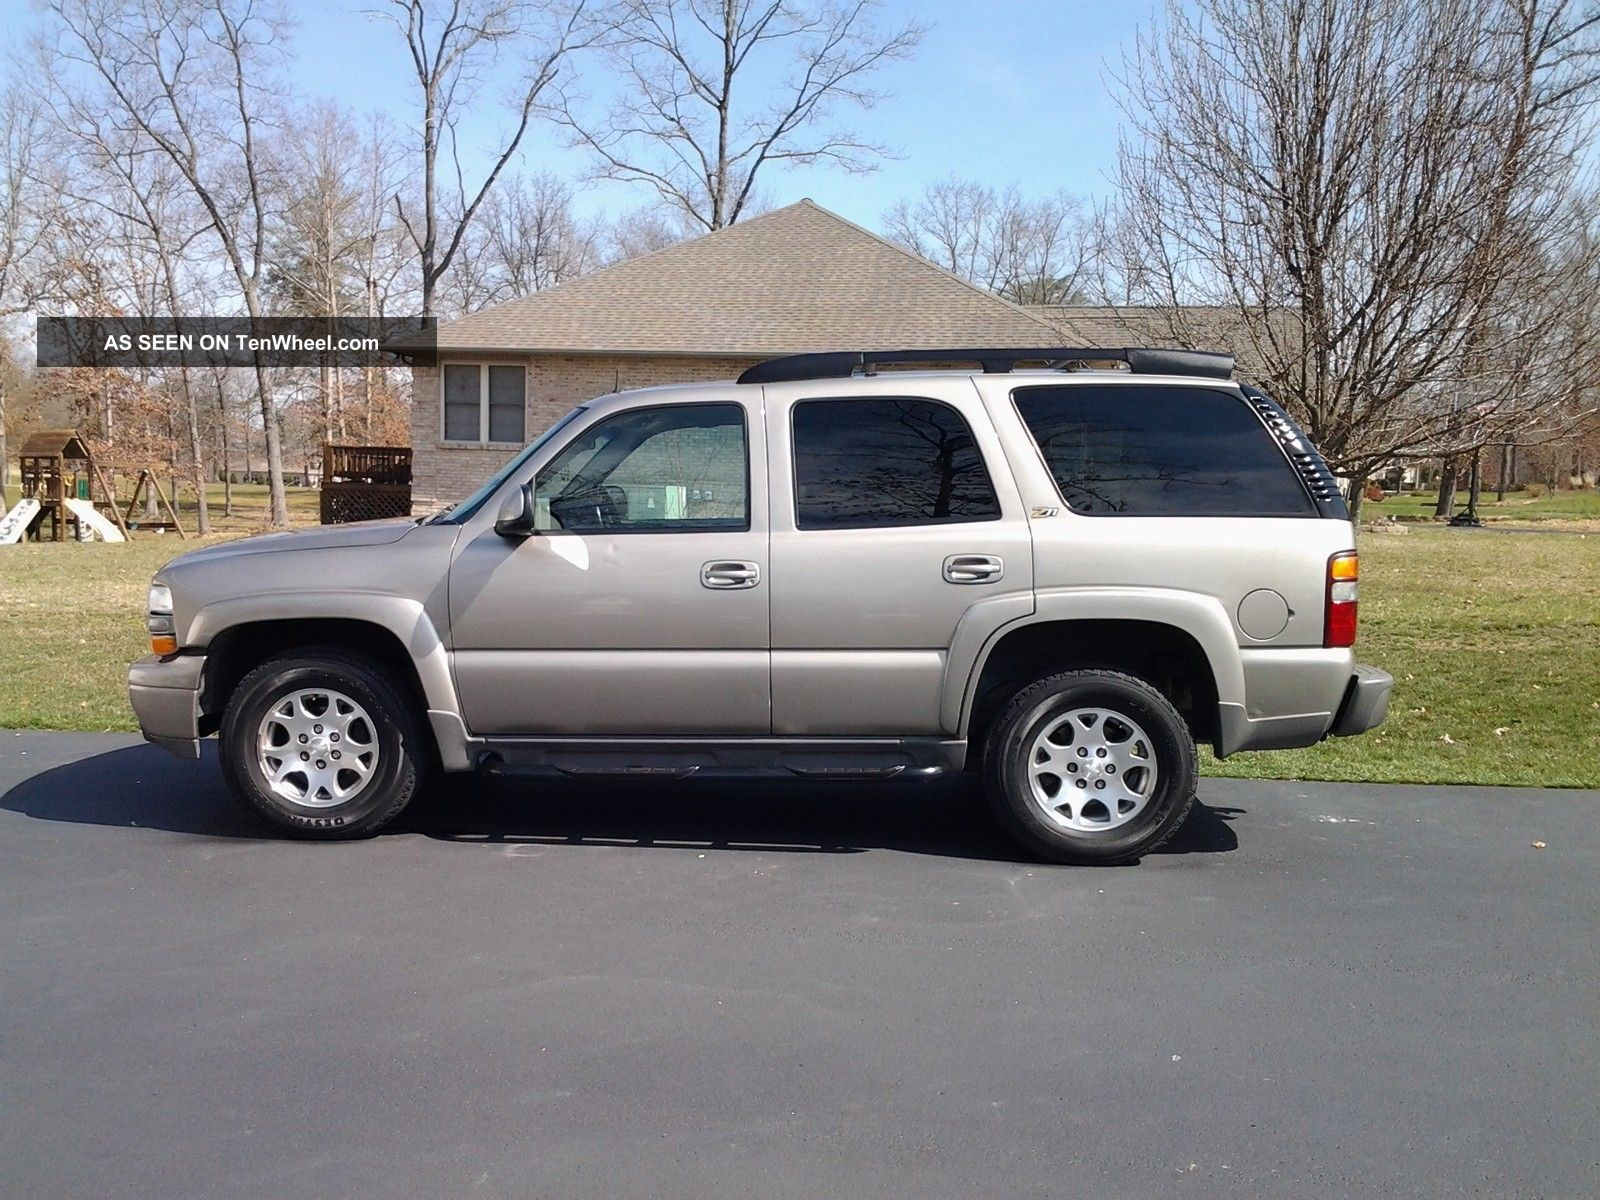 2013 chevy tahoe exterior photos mid size suv chevrolet. Black Bedroom Furniture Sets. Home Design Ideas